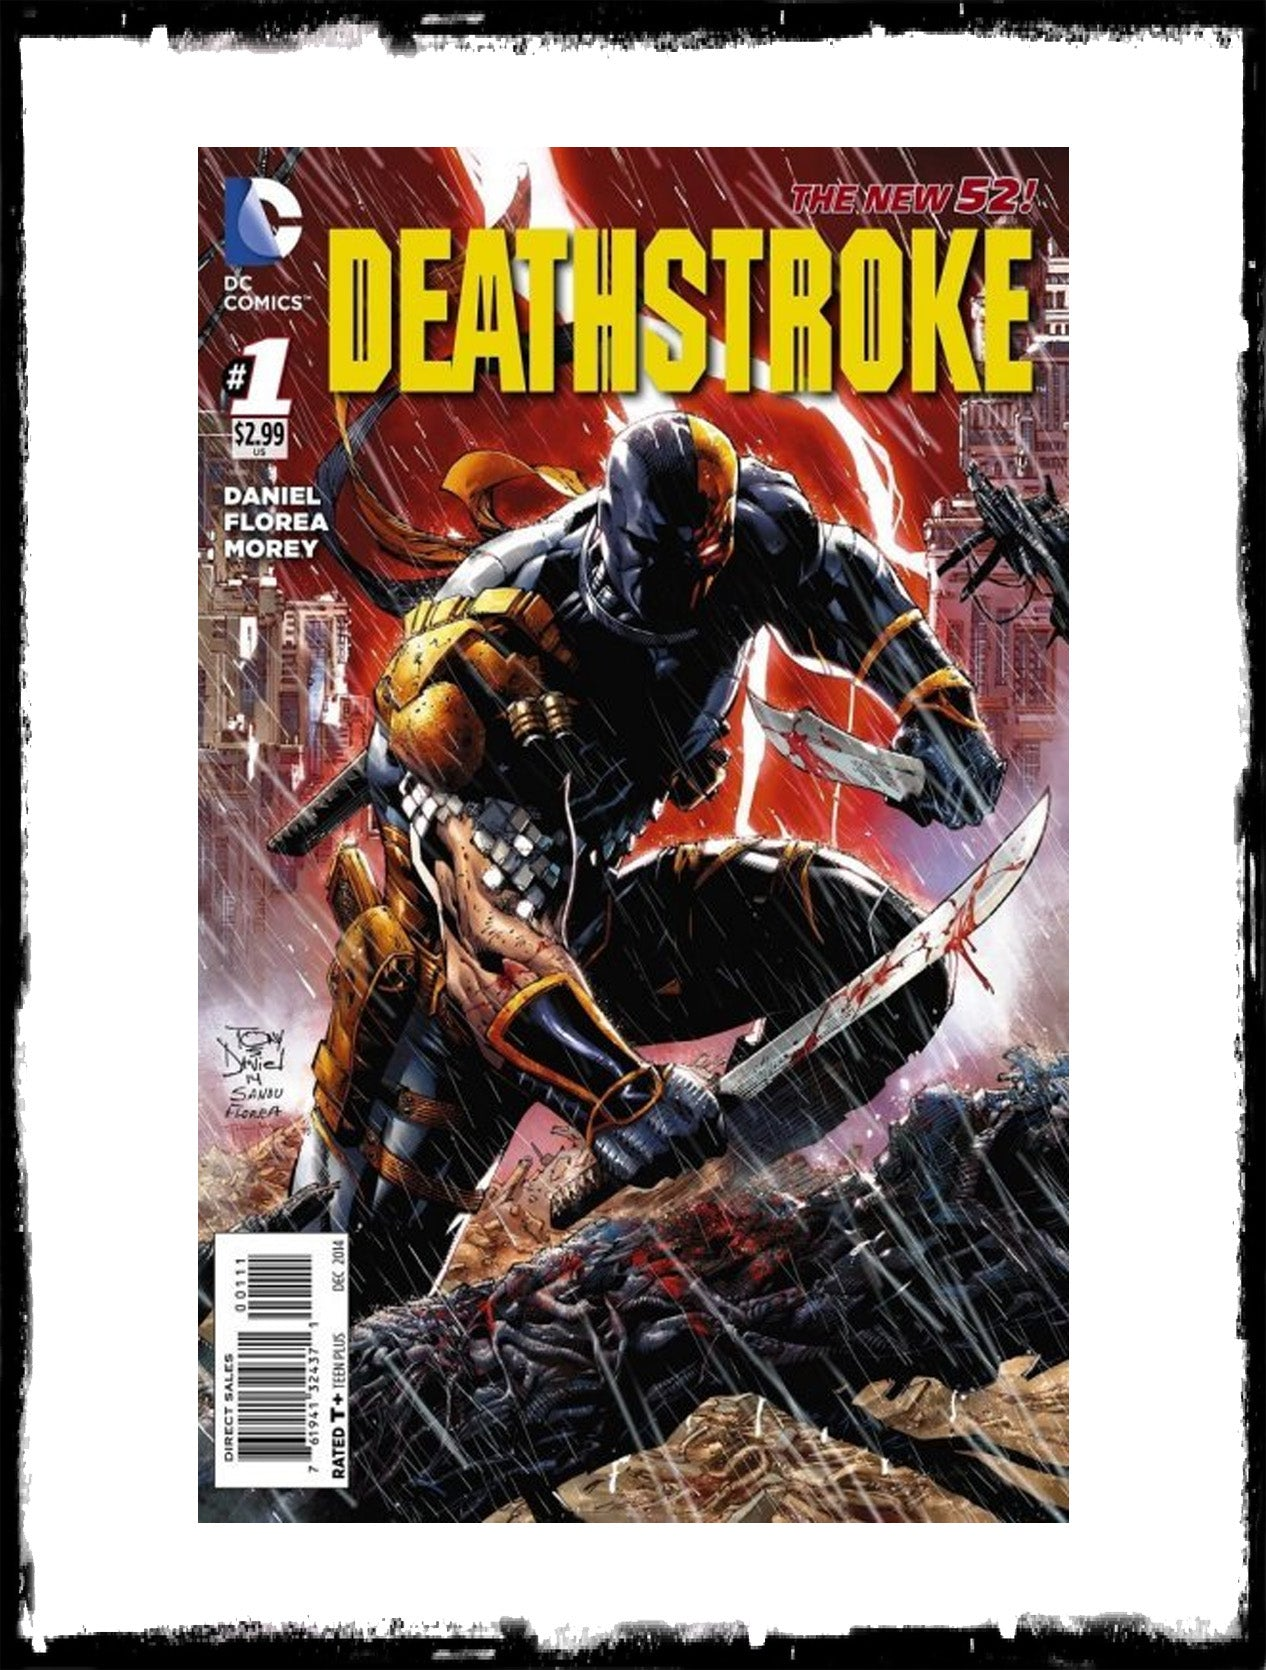 DEATHSTROKE - #1 TONY DANIEL COVER! (2014 - CONDITION NM)